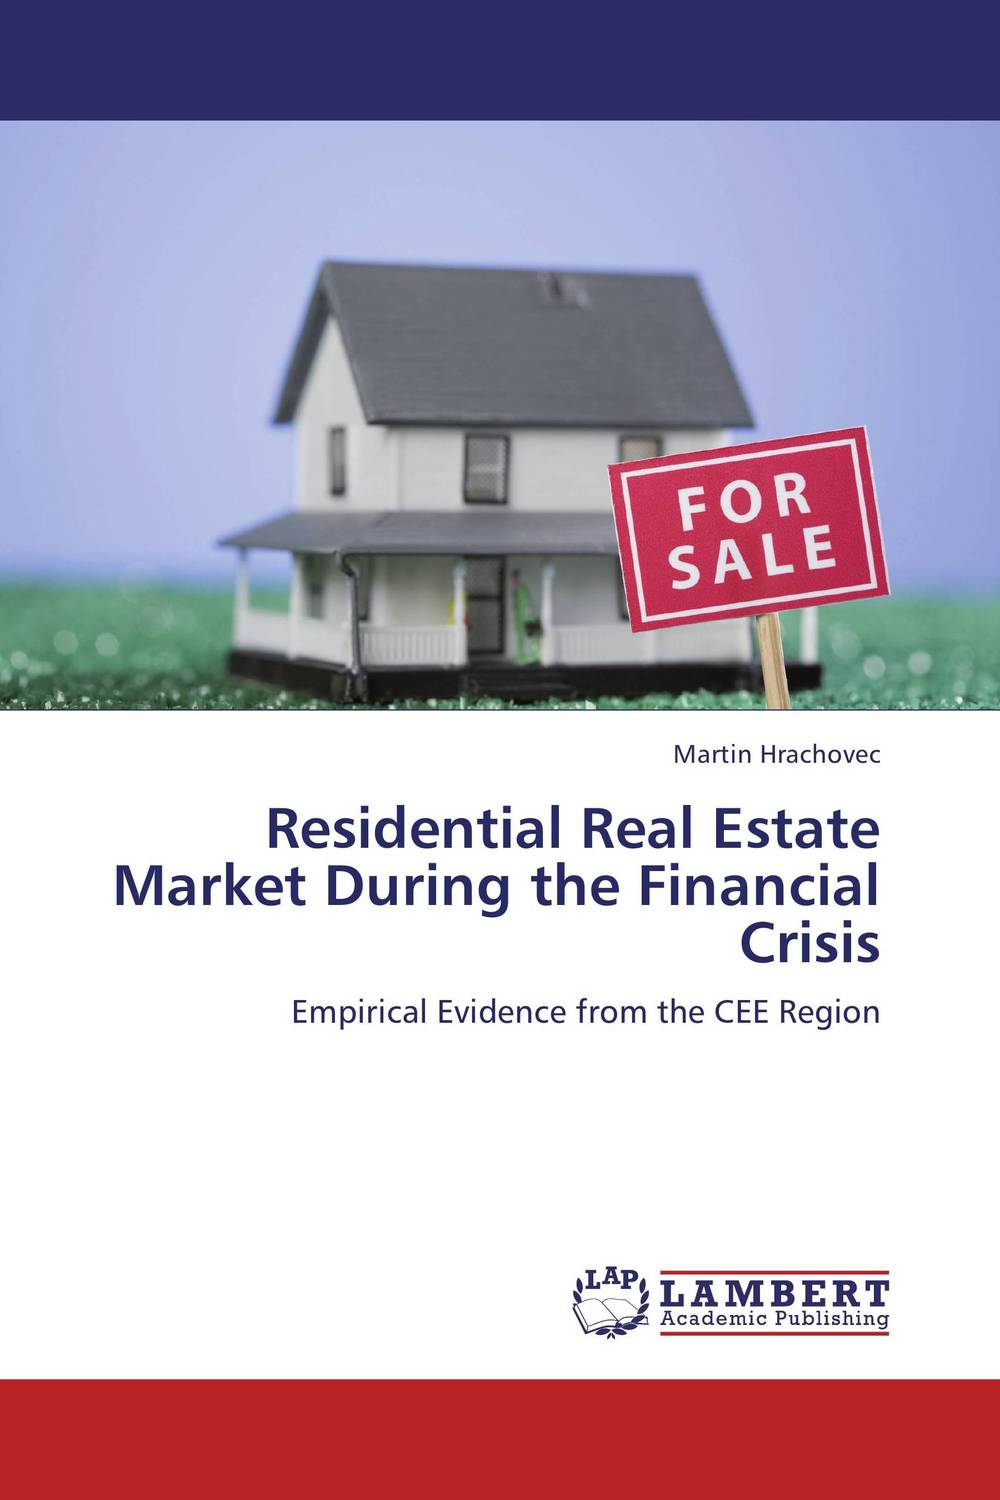 Residential Real Estate Market During the Financial Crisis carlos alberto palomino lazo and aimee r kanyankogote extraction of market expectations from option prices